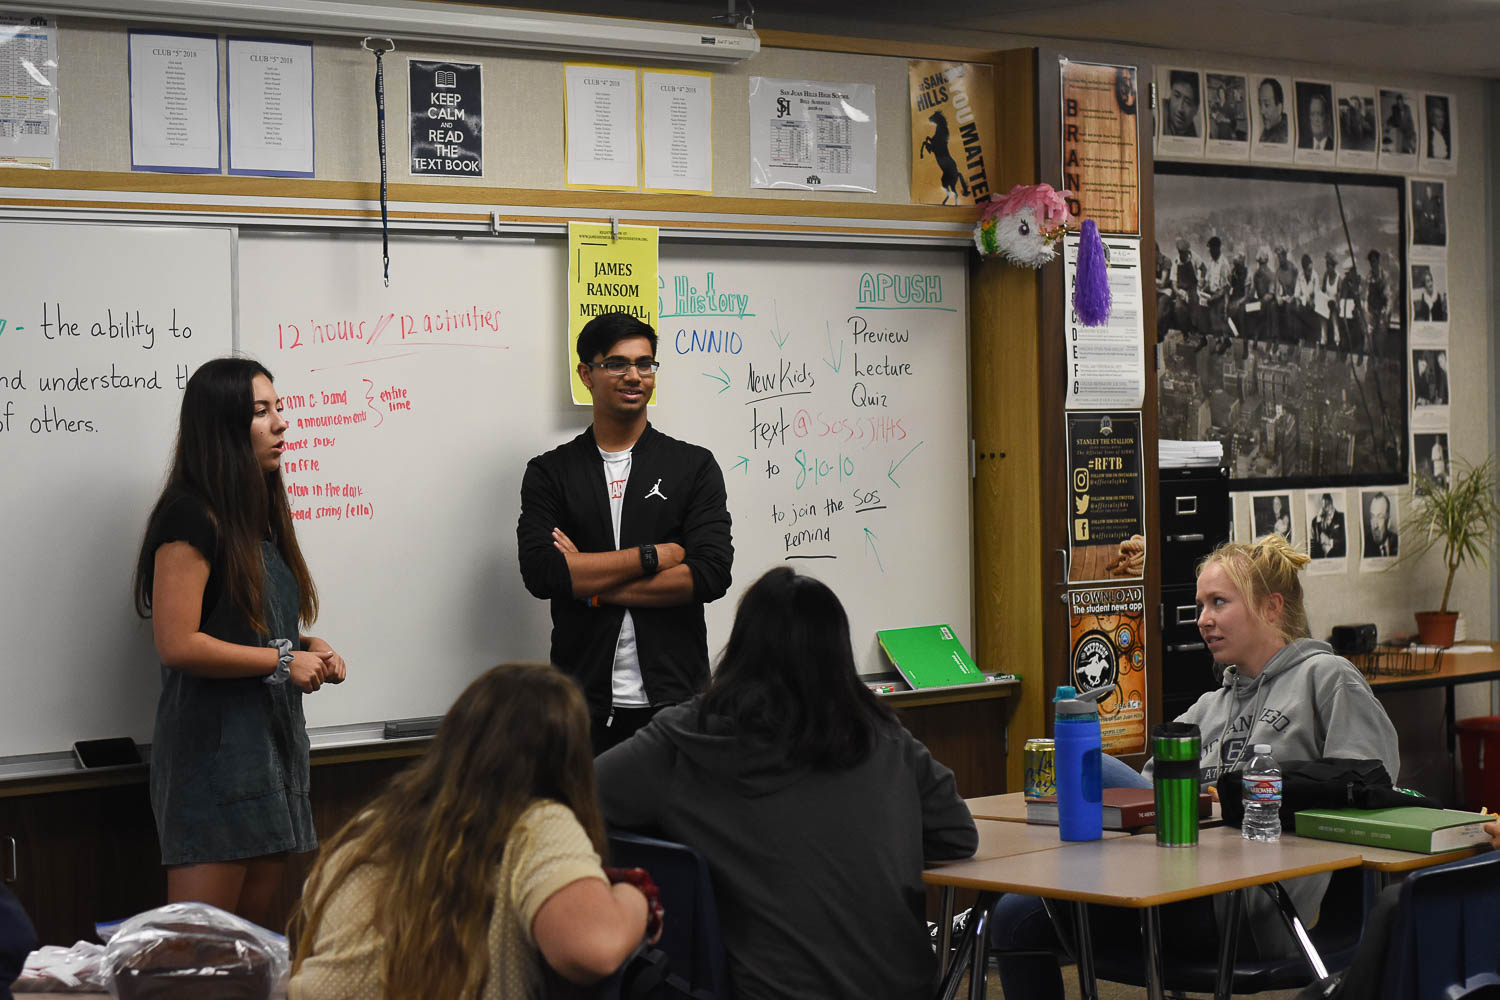 Vice president, Ajay Bhatia, along with Co-President, Kiley Espinera, discusses future plans with the FPS club. They talk about the 12 hour run they will be hosting and who wants to volunteer. The club meets every Tuesday in room H205.